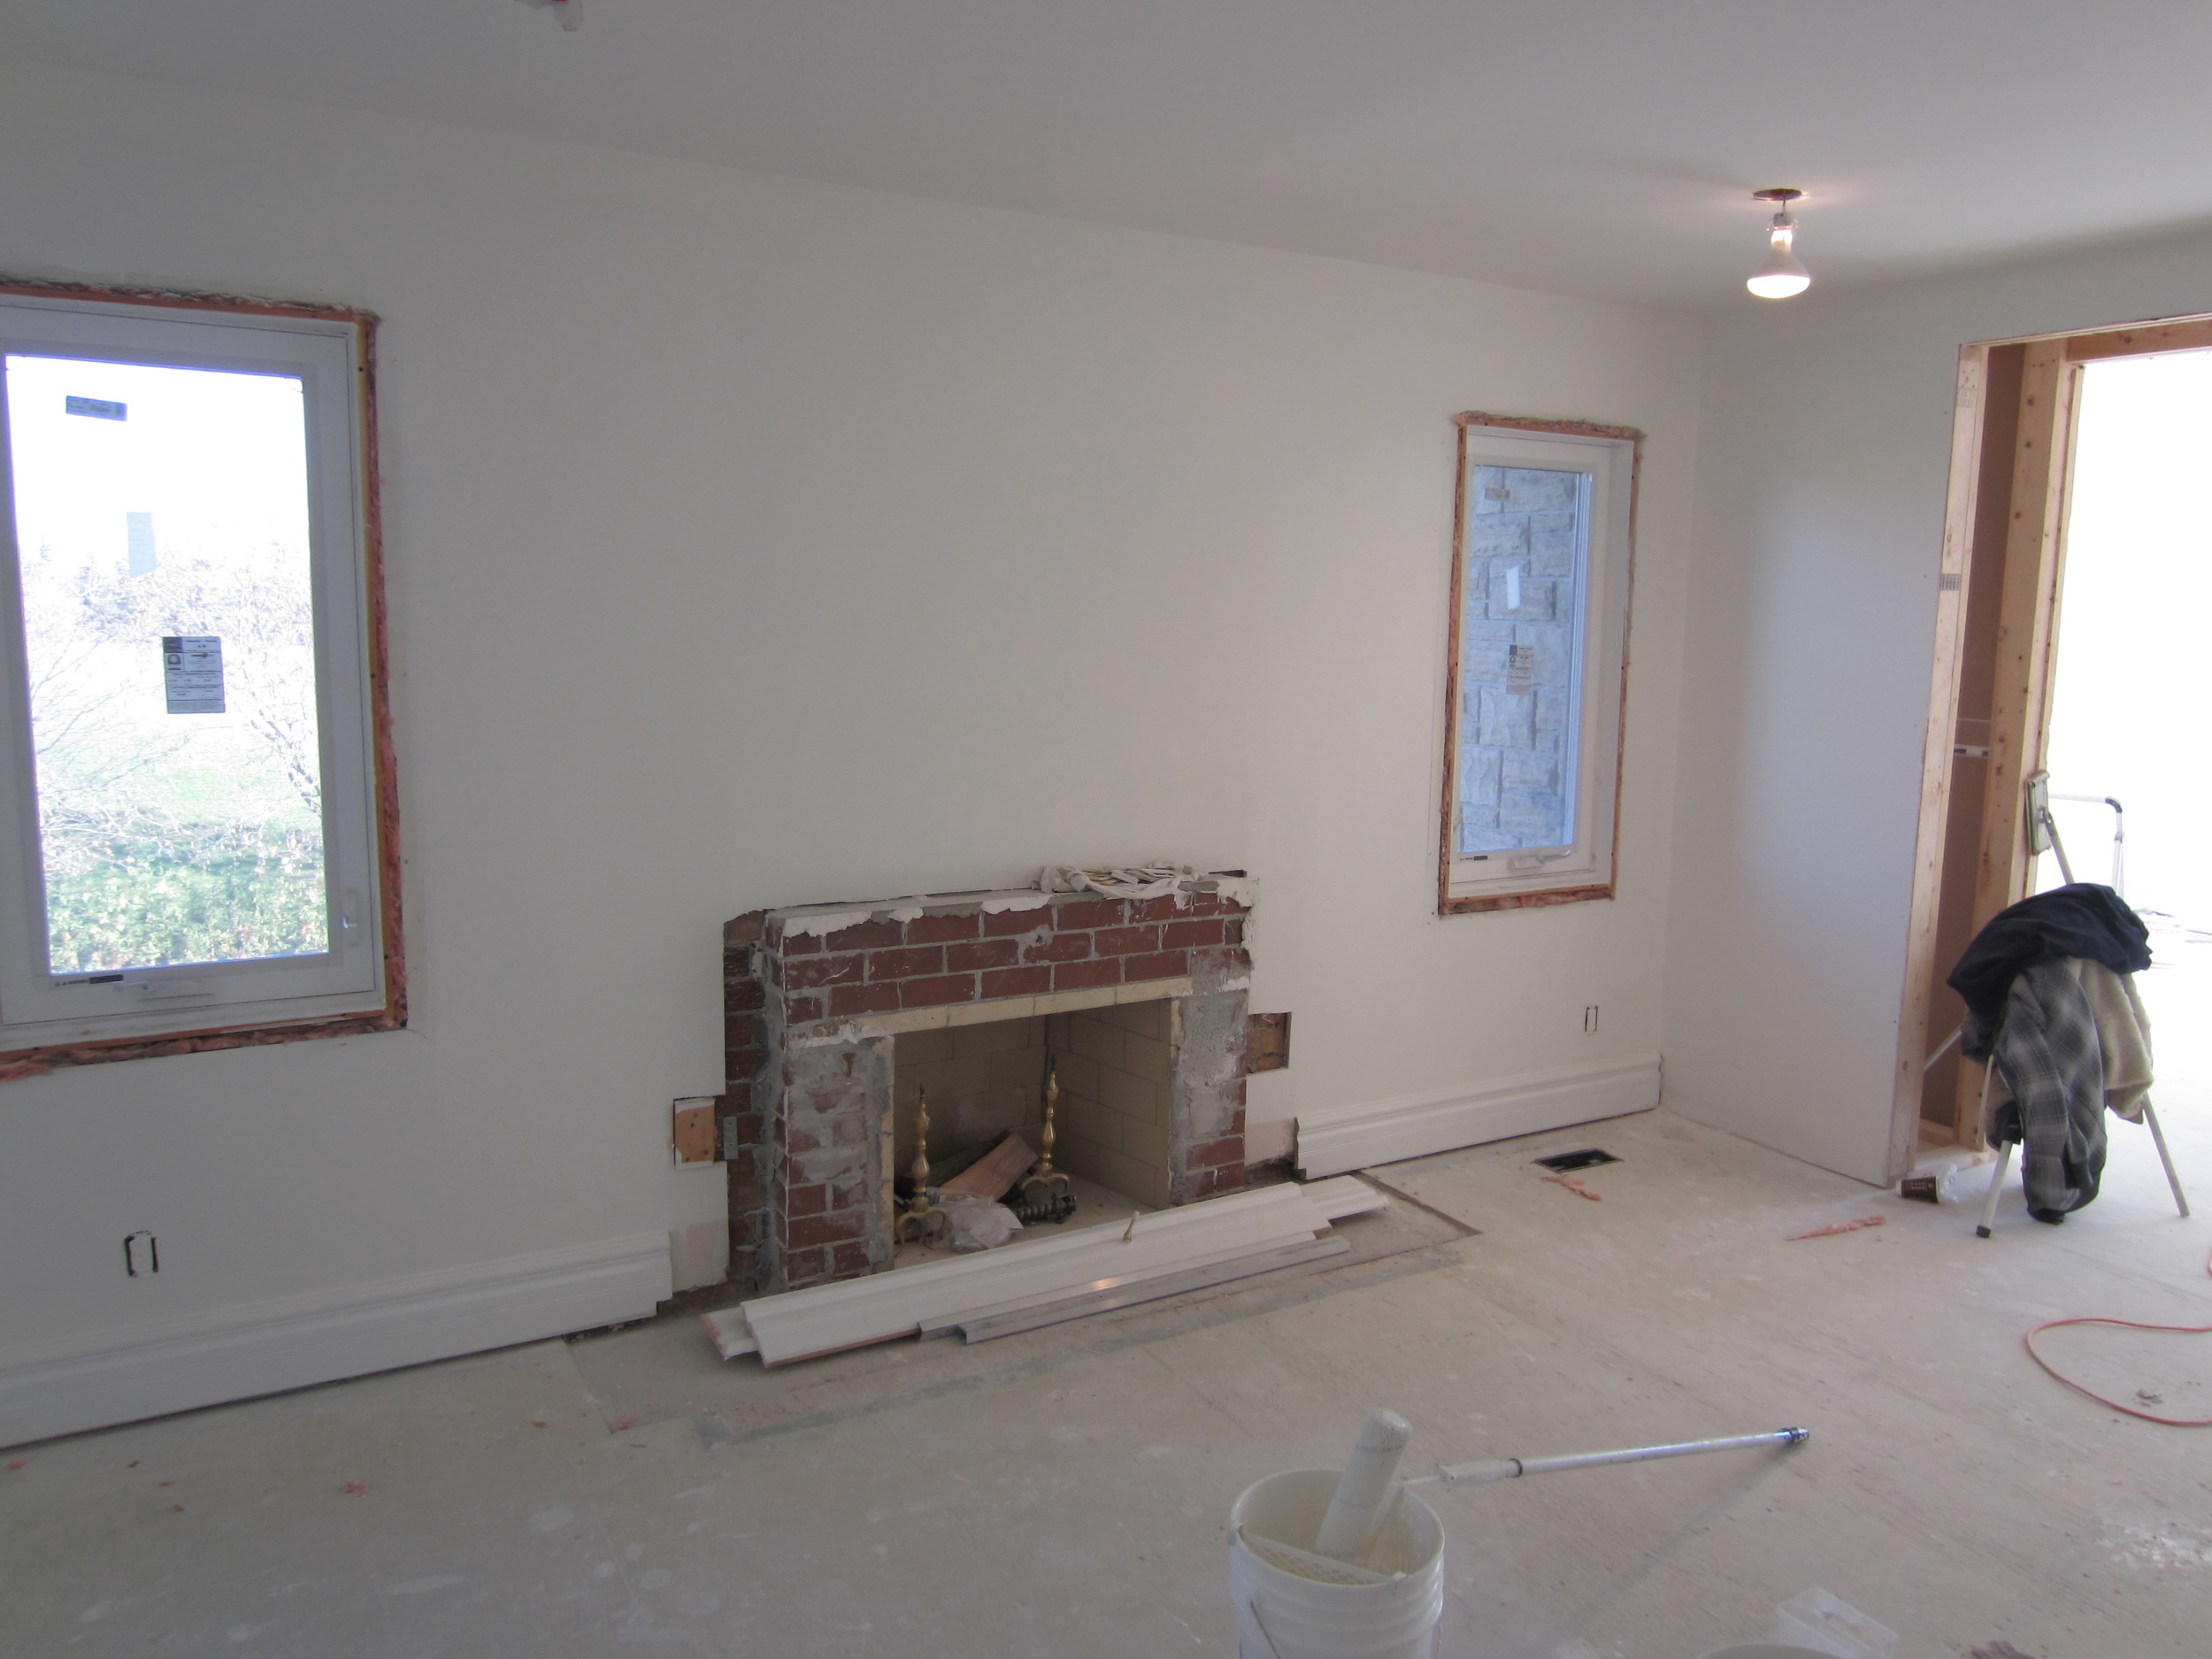 The demolition begins as we remove the stone and traditional mantel.